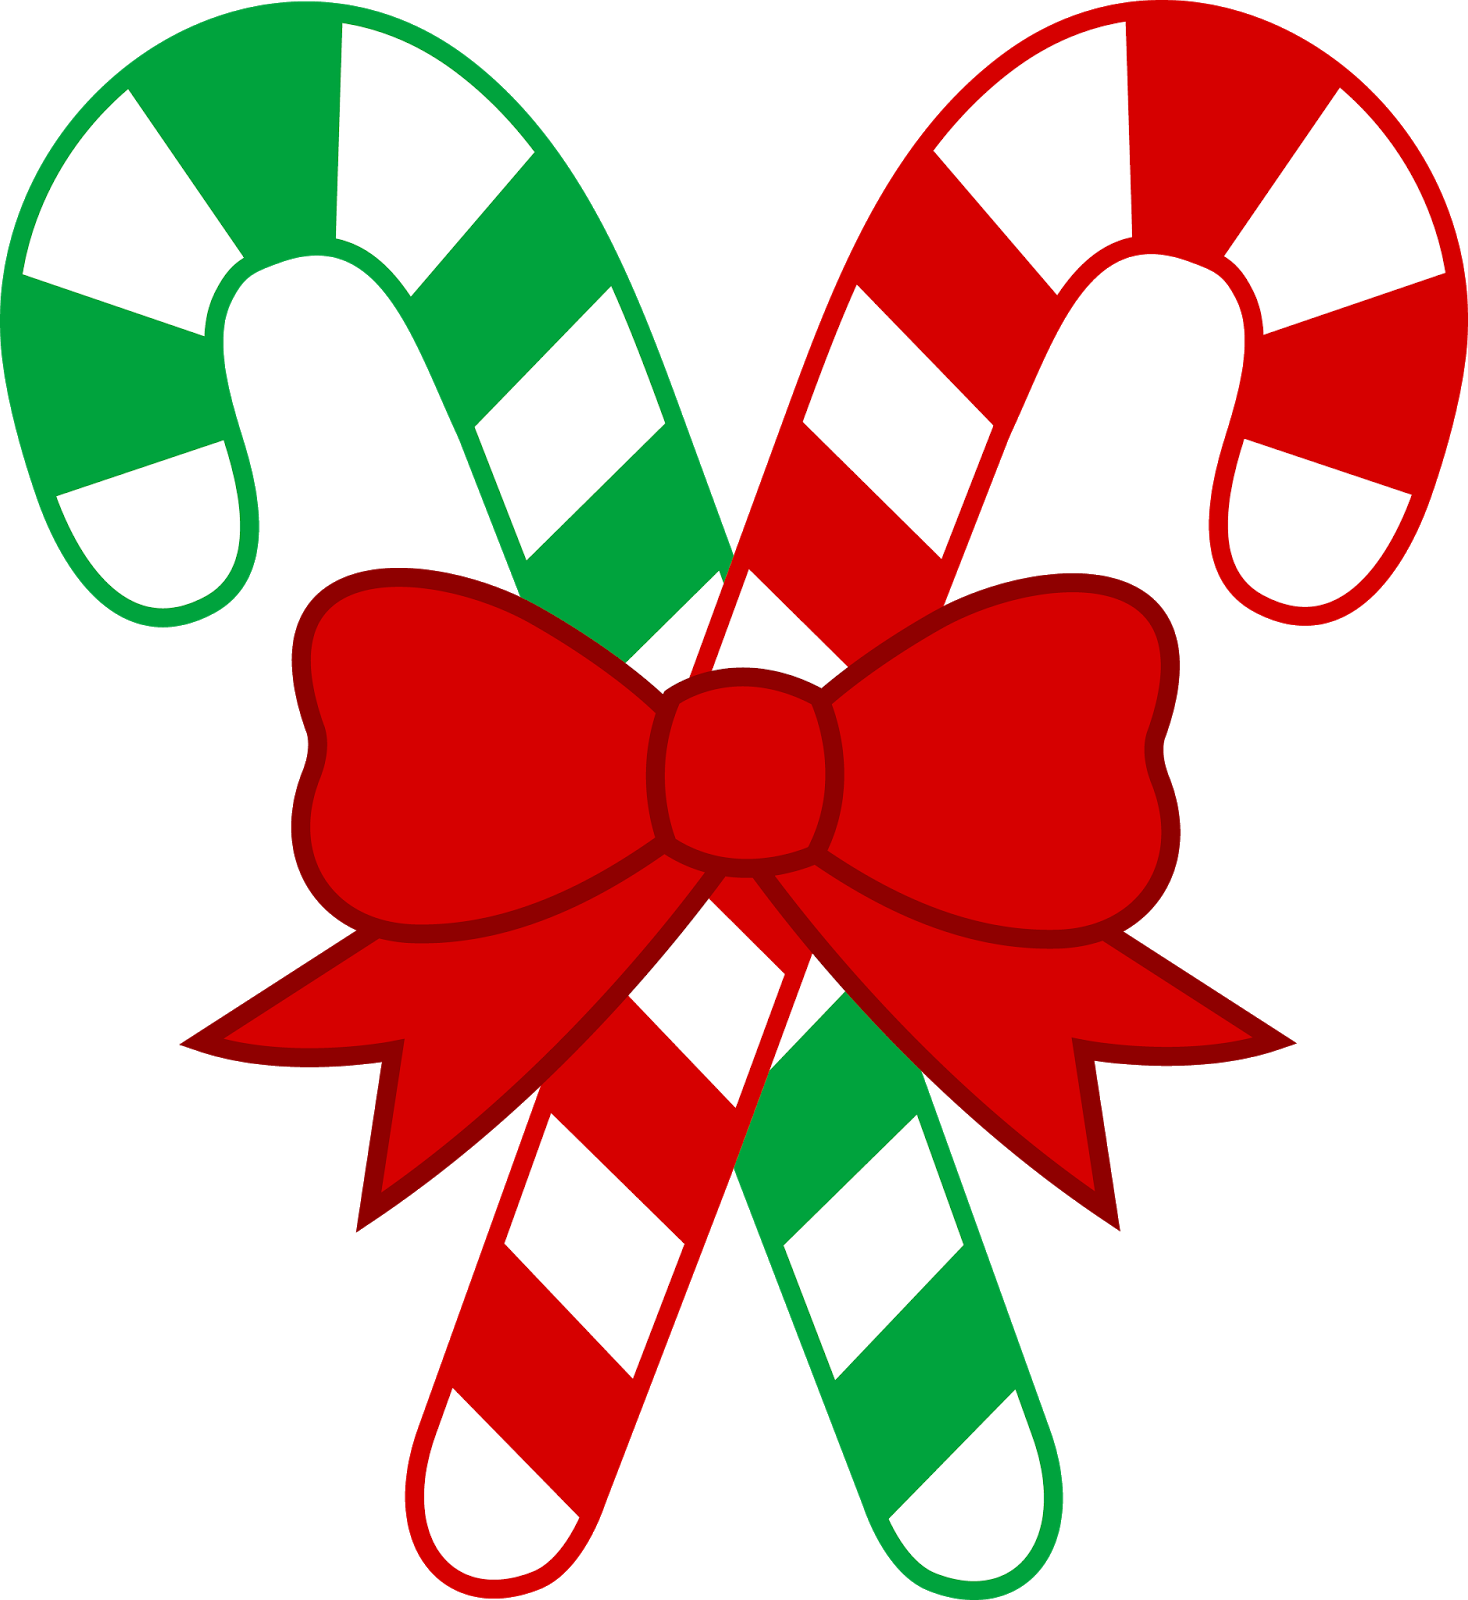 svg royalty free download Christmas holiday at getdrawings. Cane clipart three.